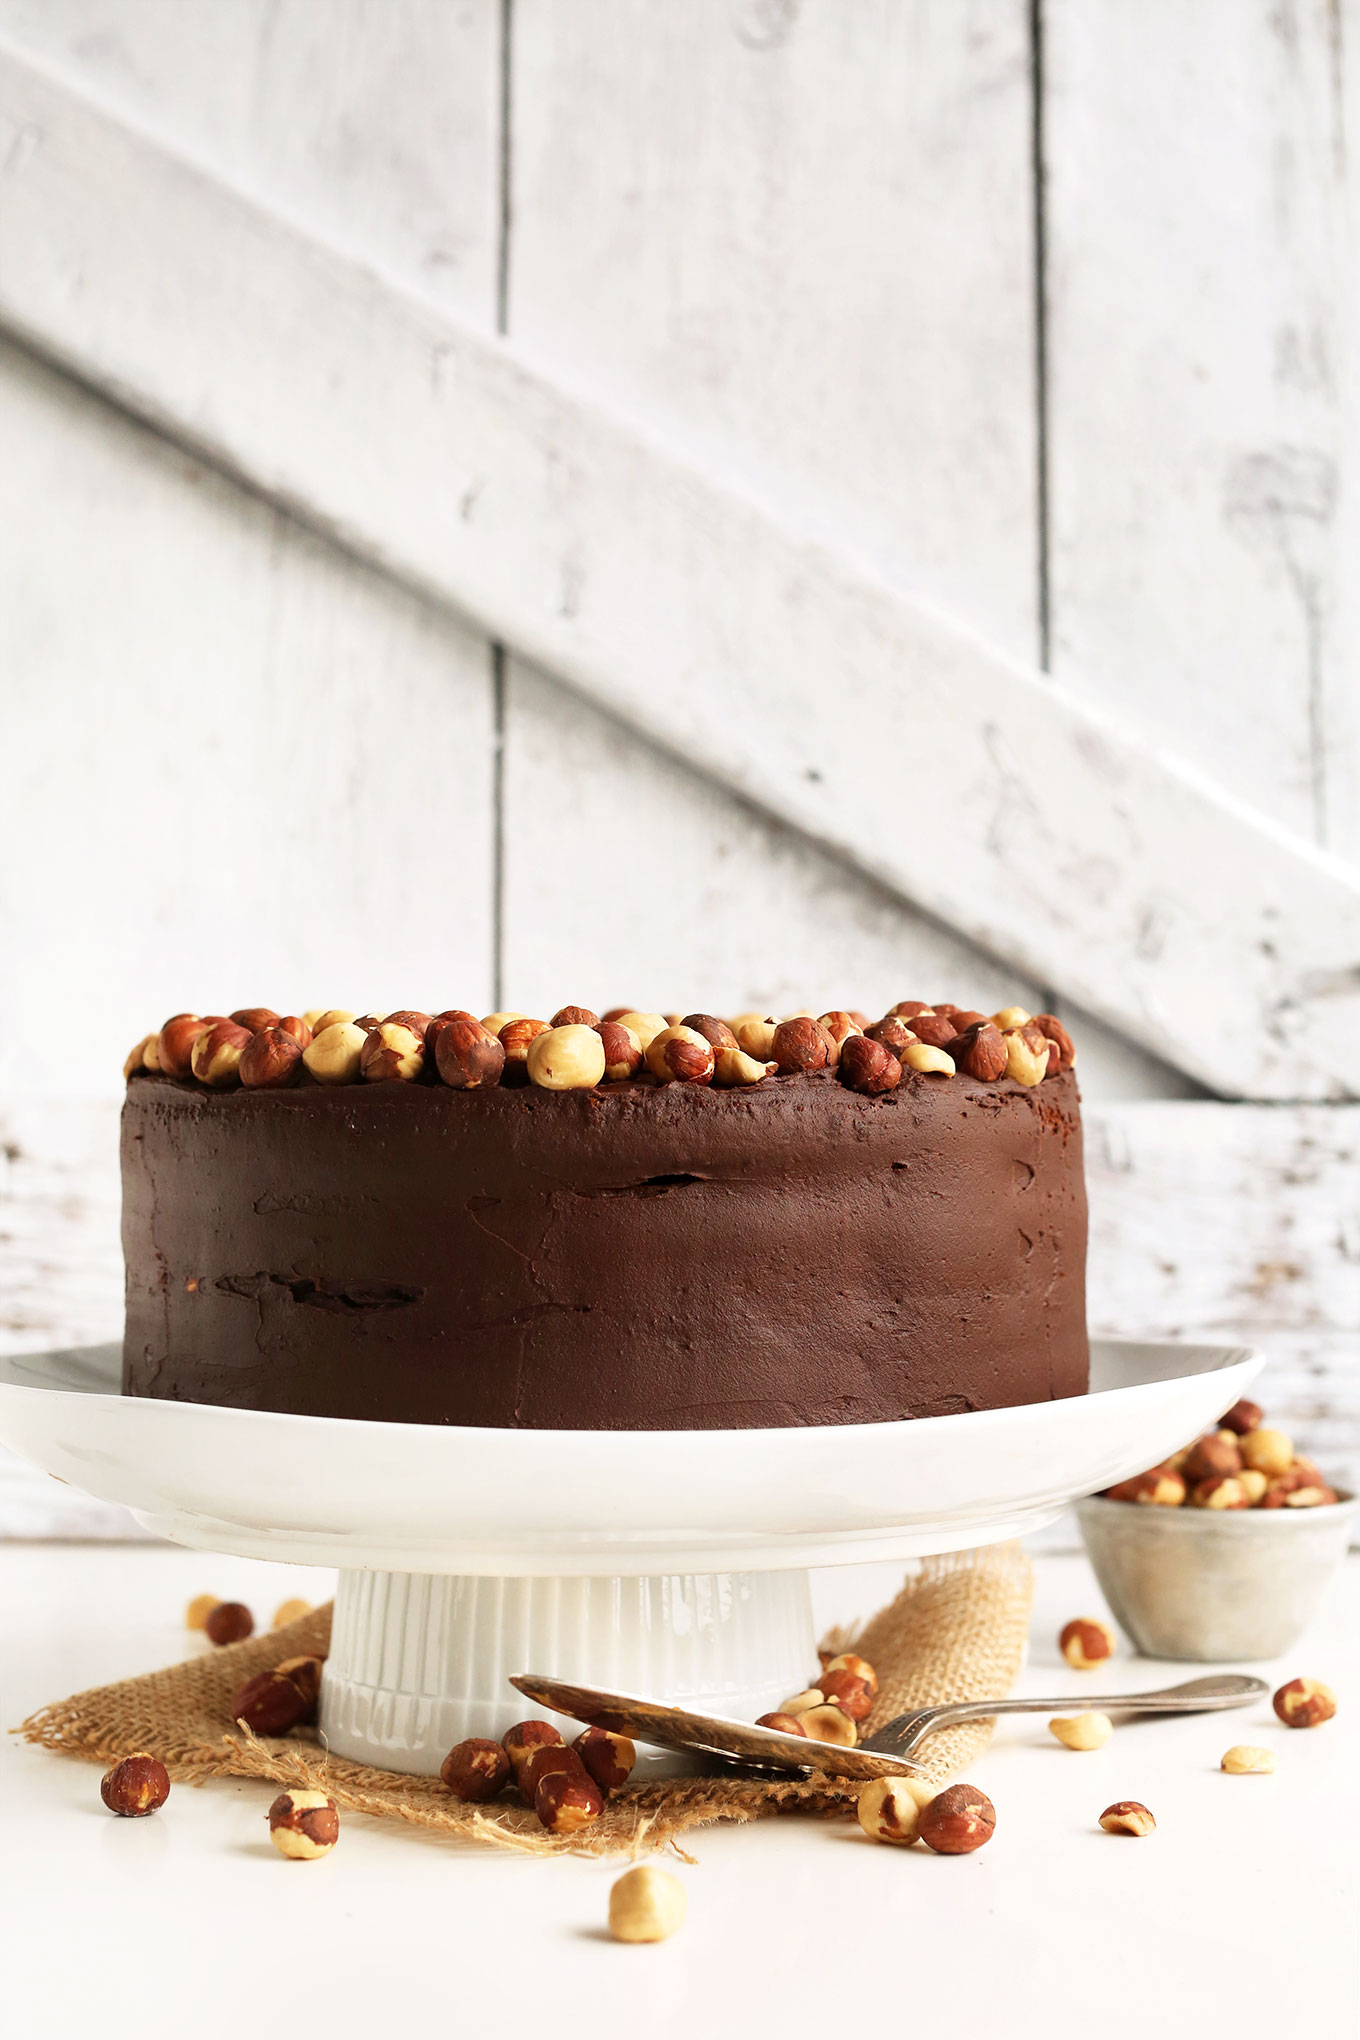 1-BOWL Vegan GF Chocolate Hazelnut Cake! So rich, moist, and delicious! #vegan #glutenfree #hazelnut #minimalistbaker